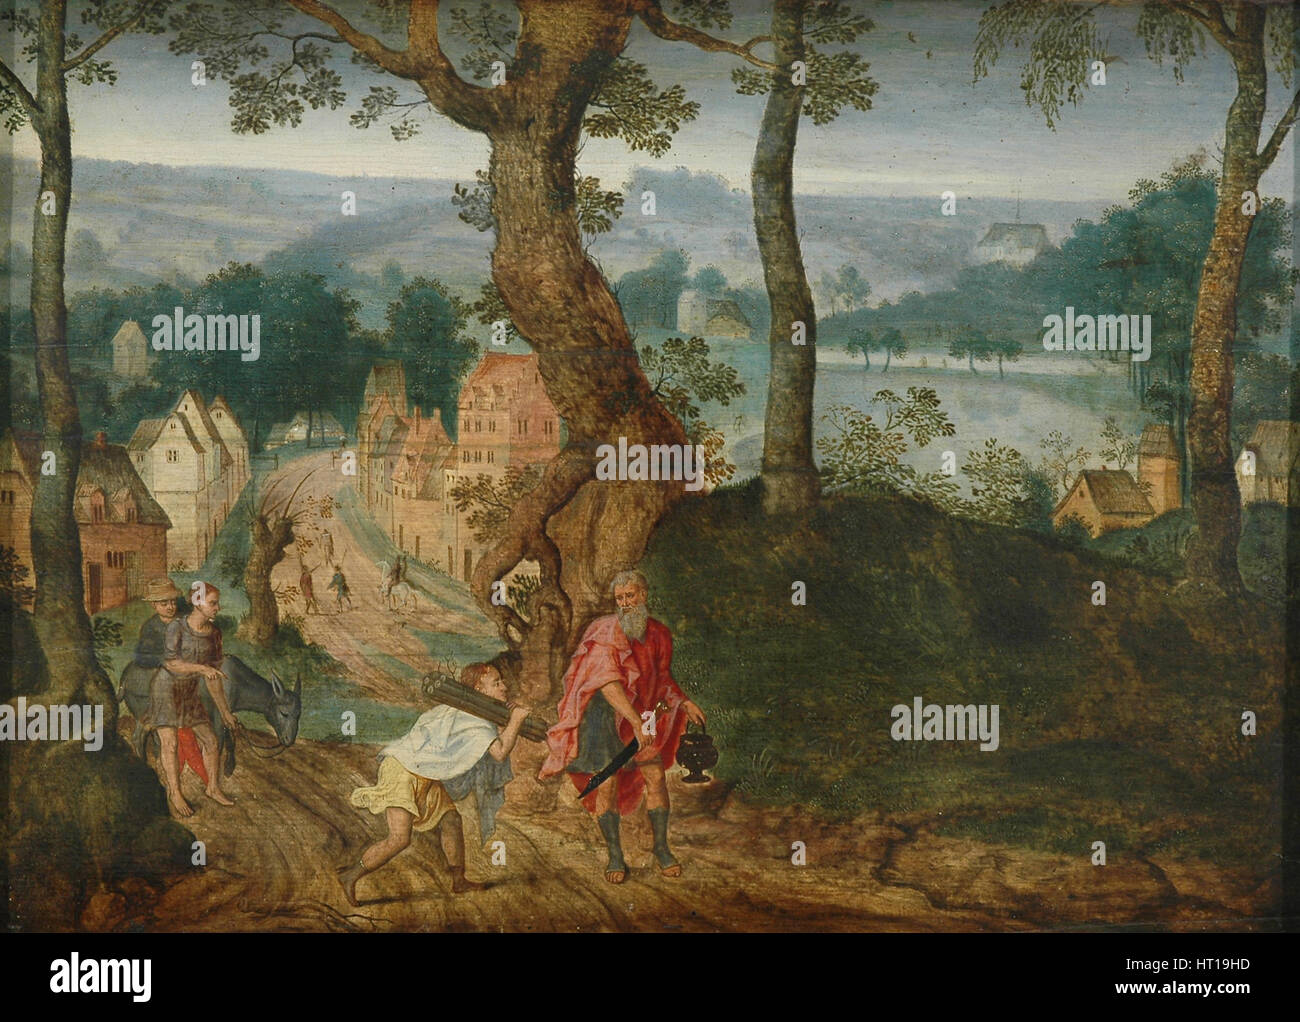 Landscape with Abraham and Isaac, Mid of 17th century. Artist: Grimmer, Jacob (ca 1525-1590) - Stock Image